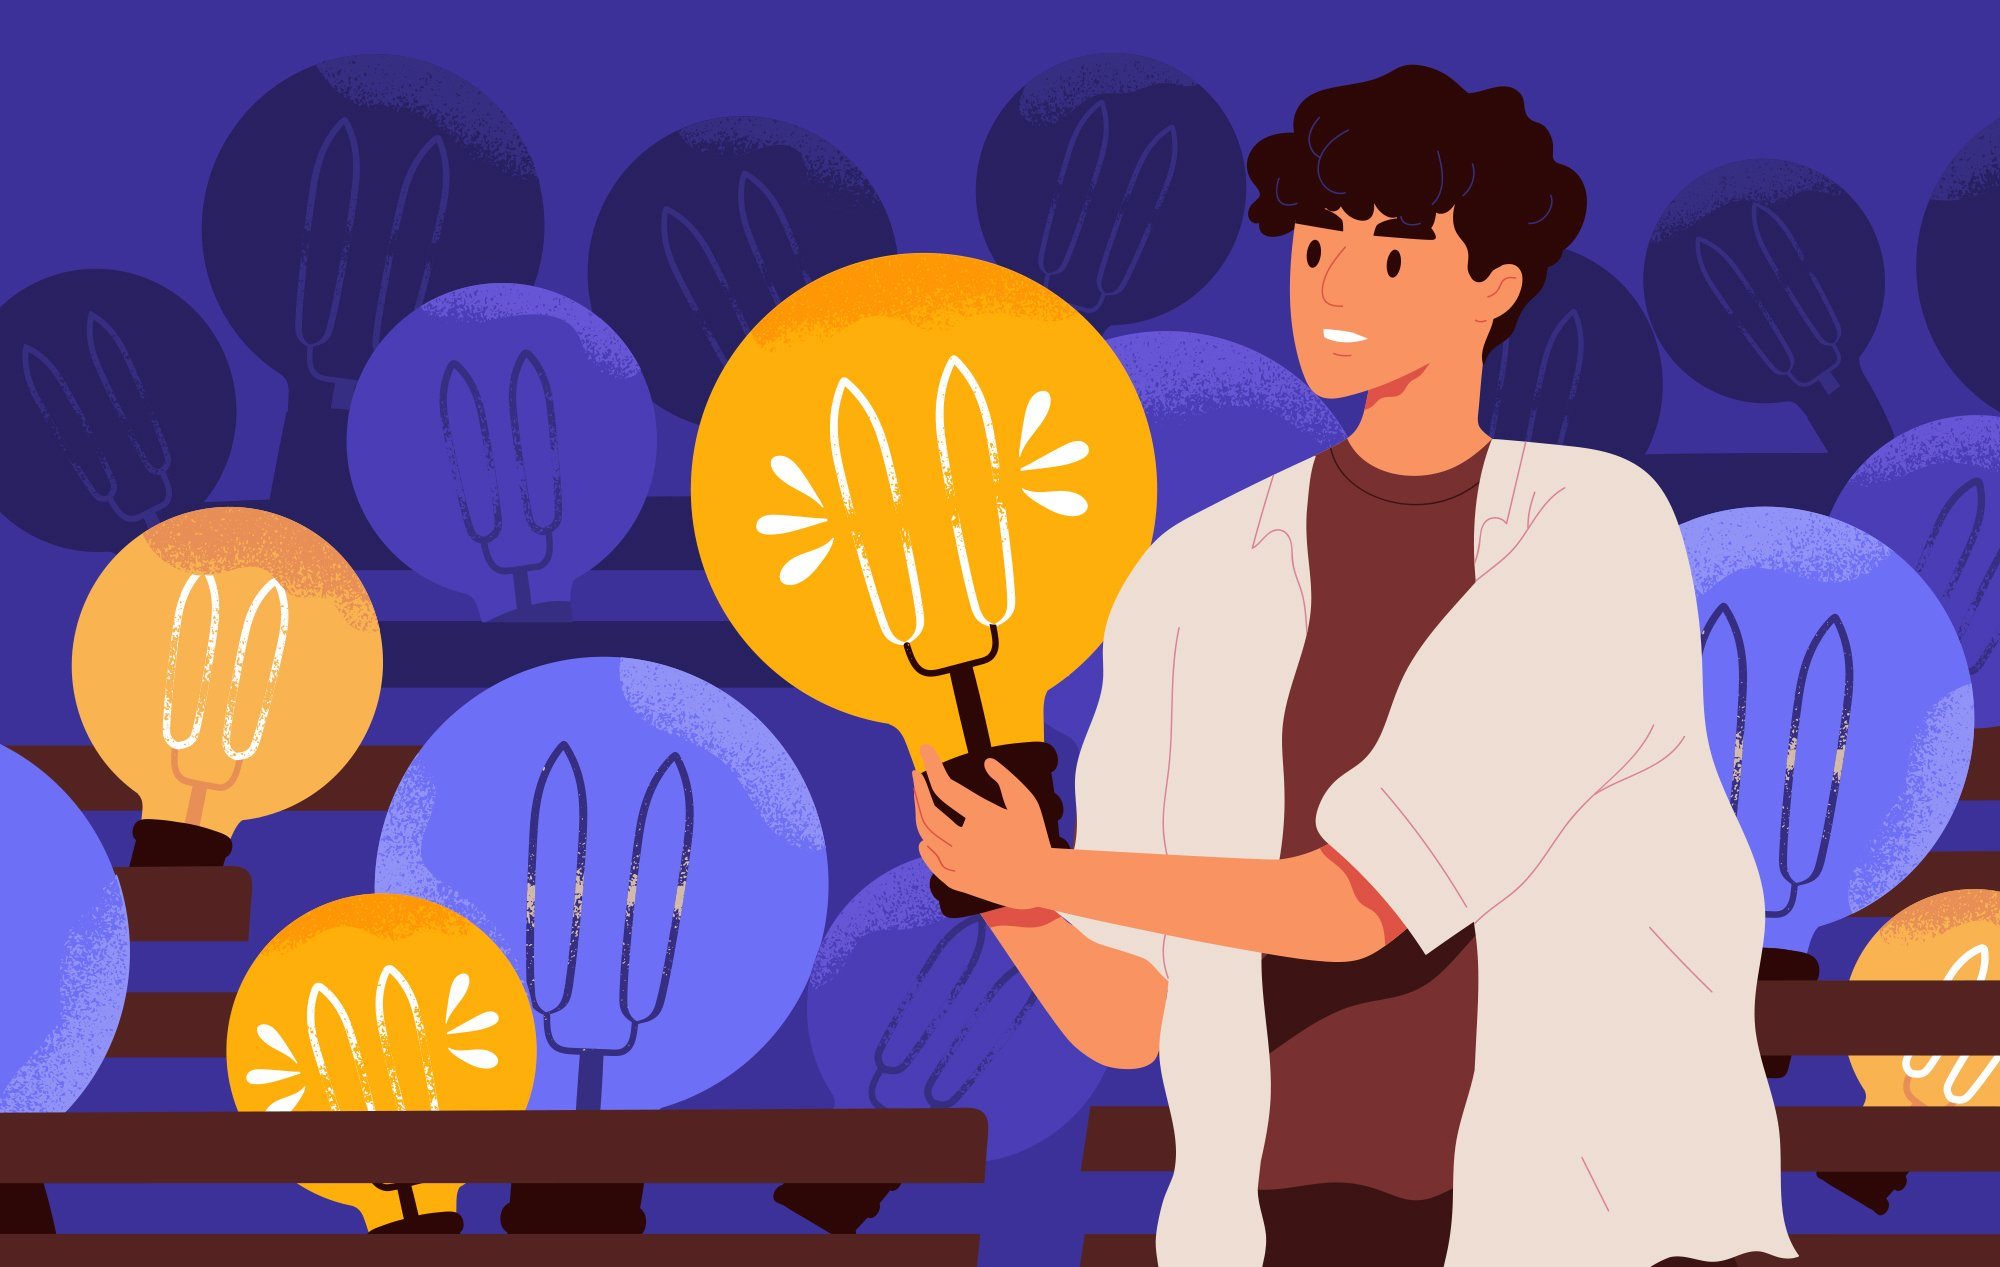 Illustration of a person holding a lit lightbulb. More lightbulbs are scattered in the background, some lit some not.